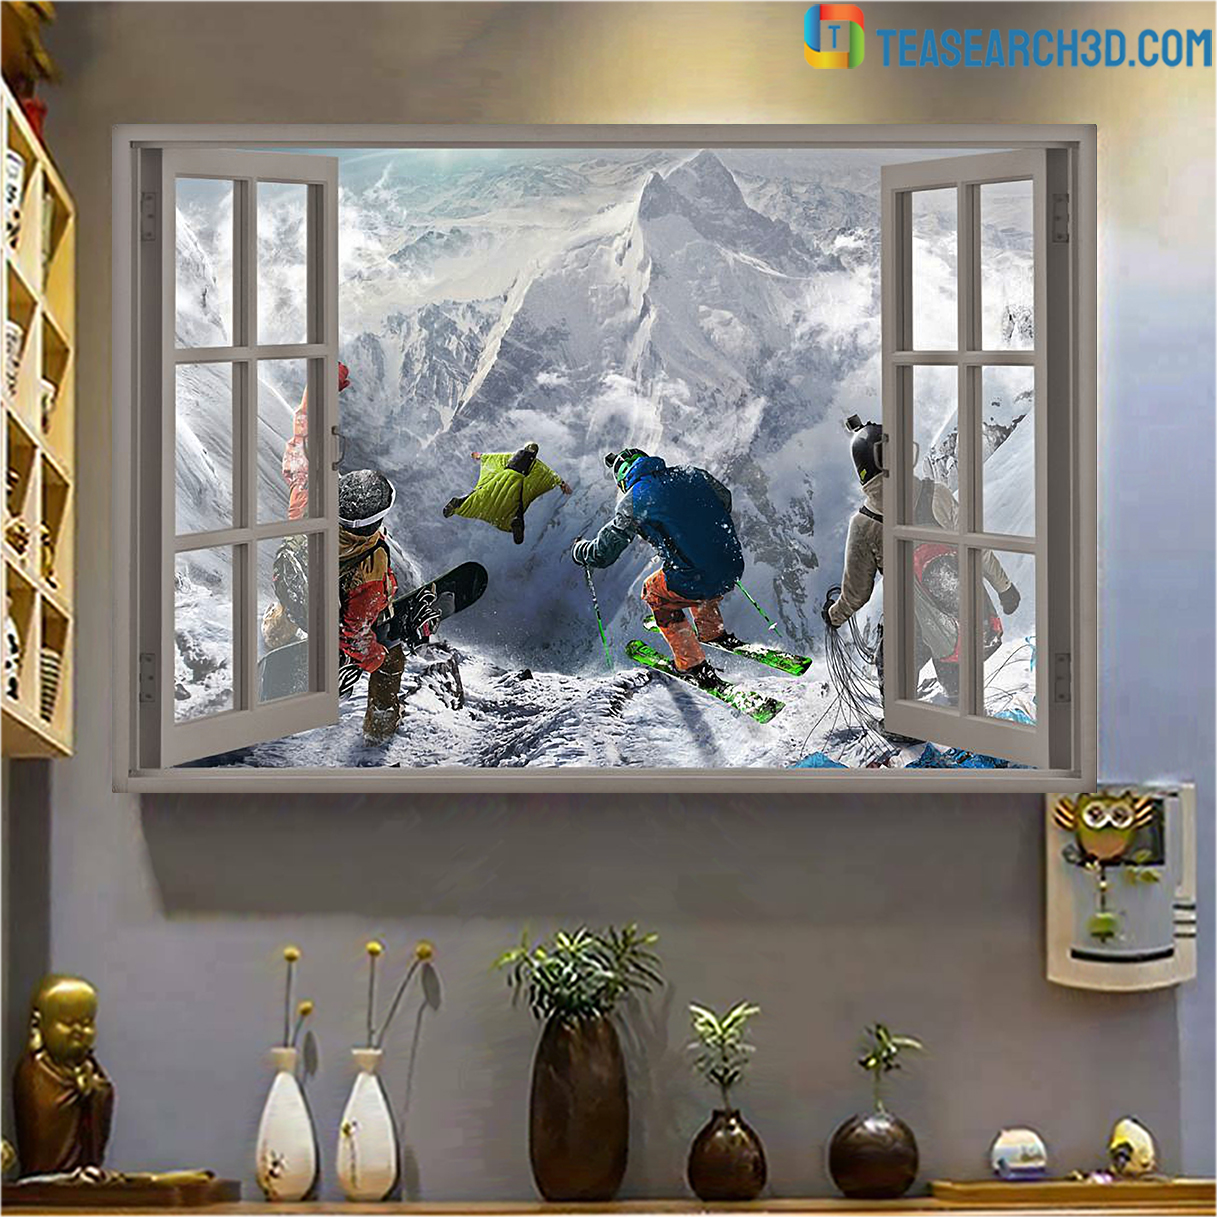 Winter sports window view poster A1